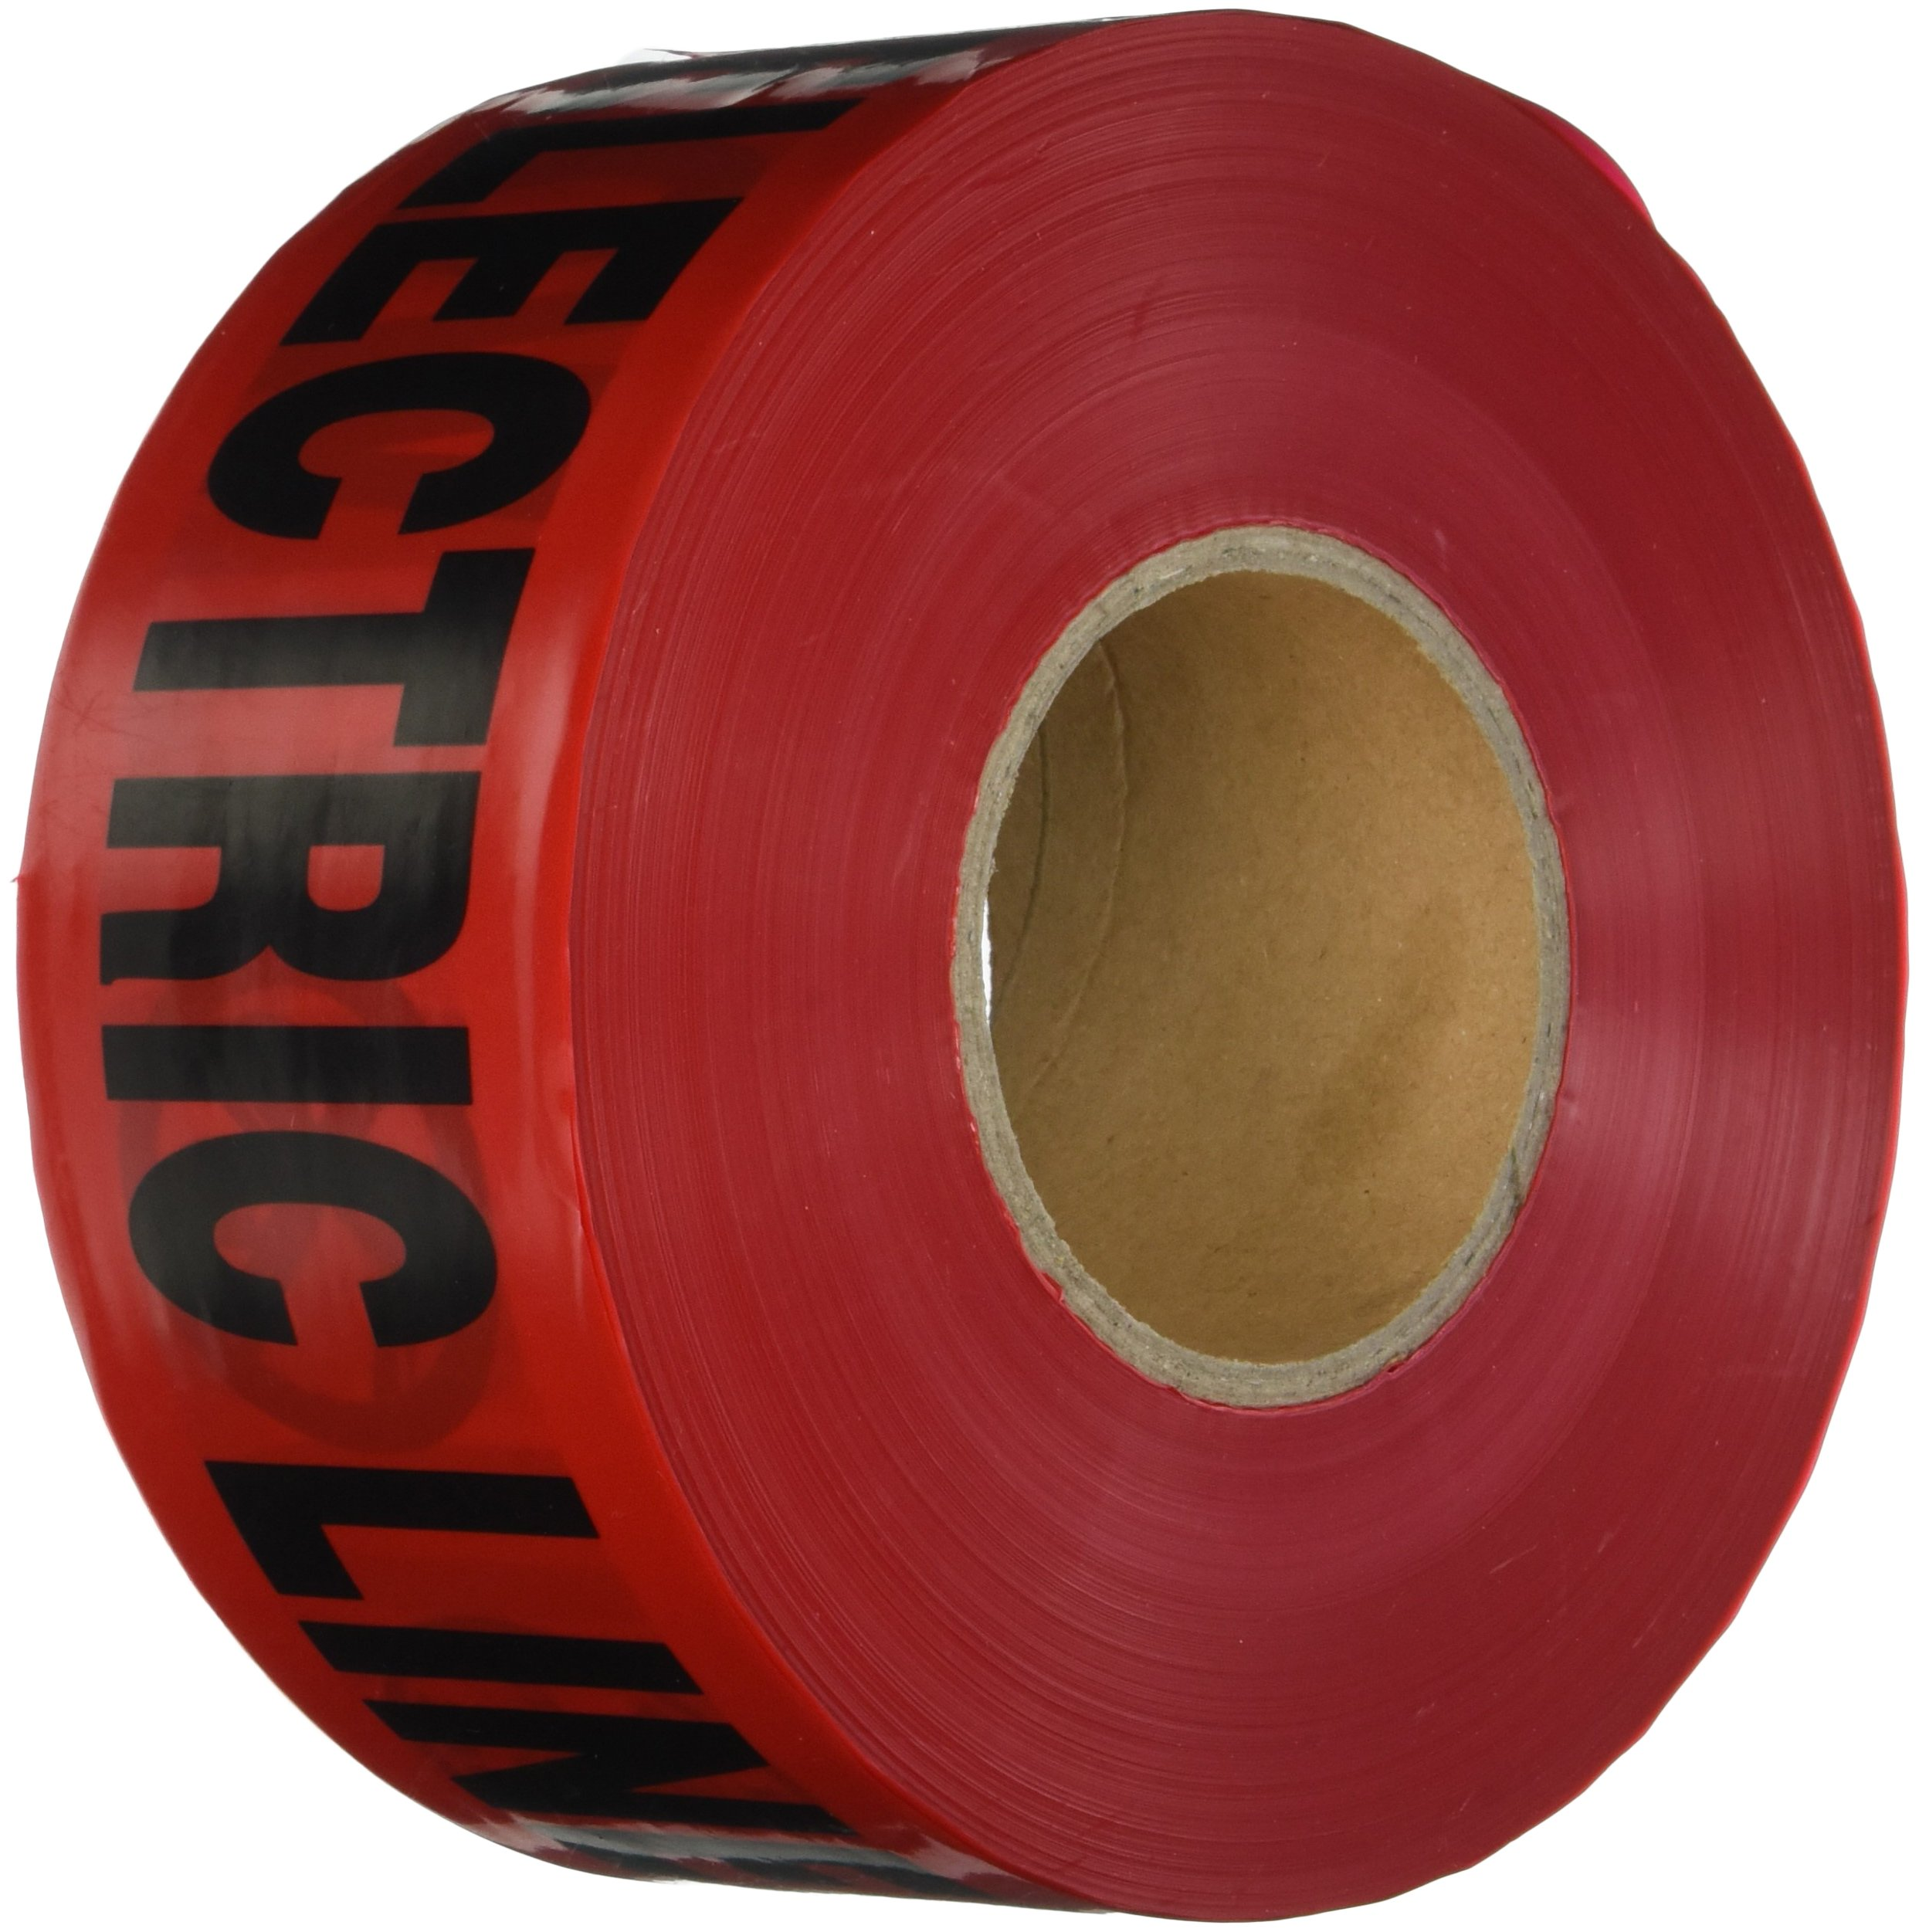 Klein Tools 58003 1000 Feet Barricade and Warning Tape with Caution/Buried Electric Line